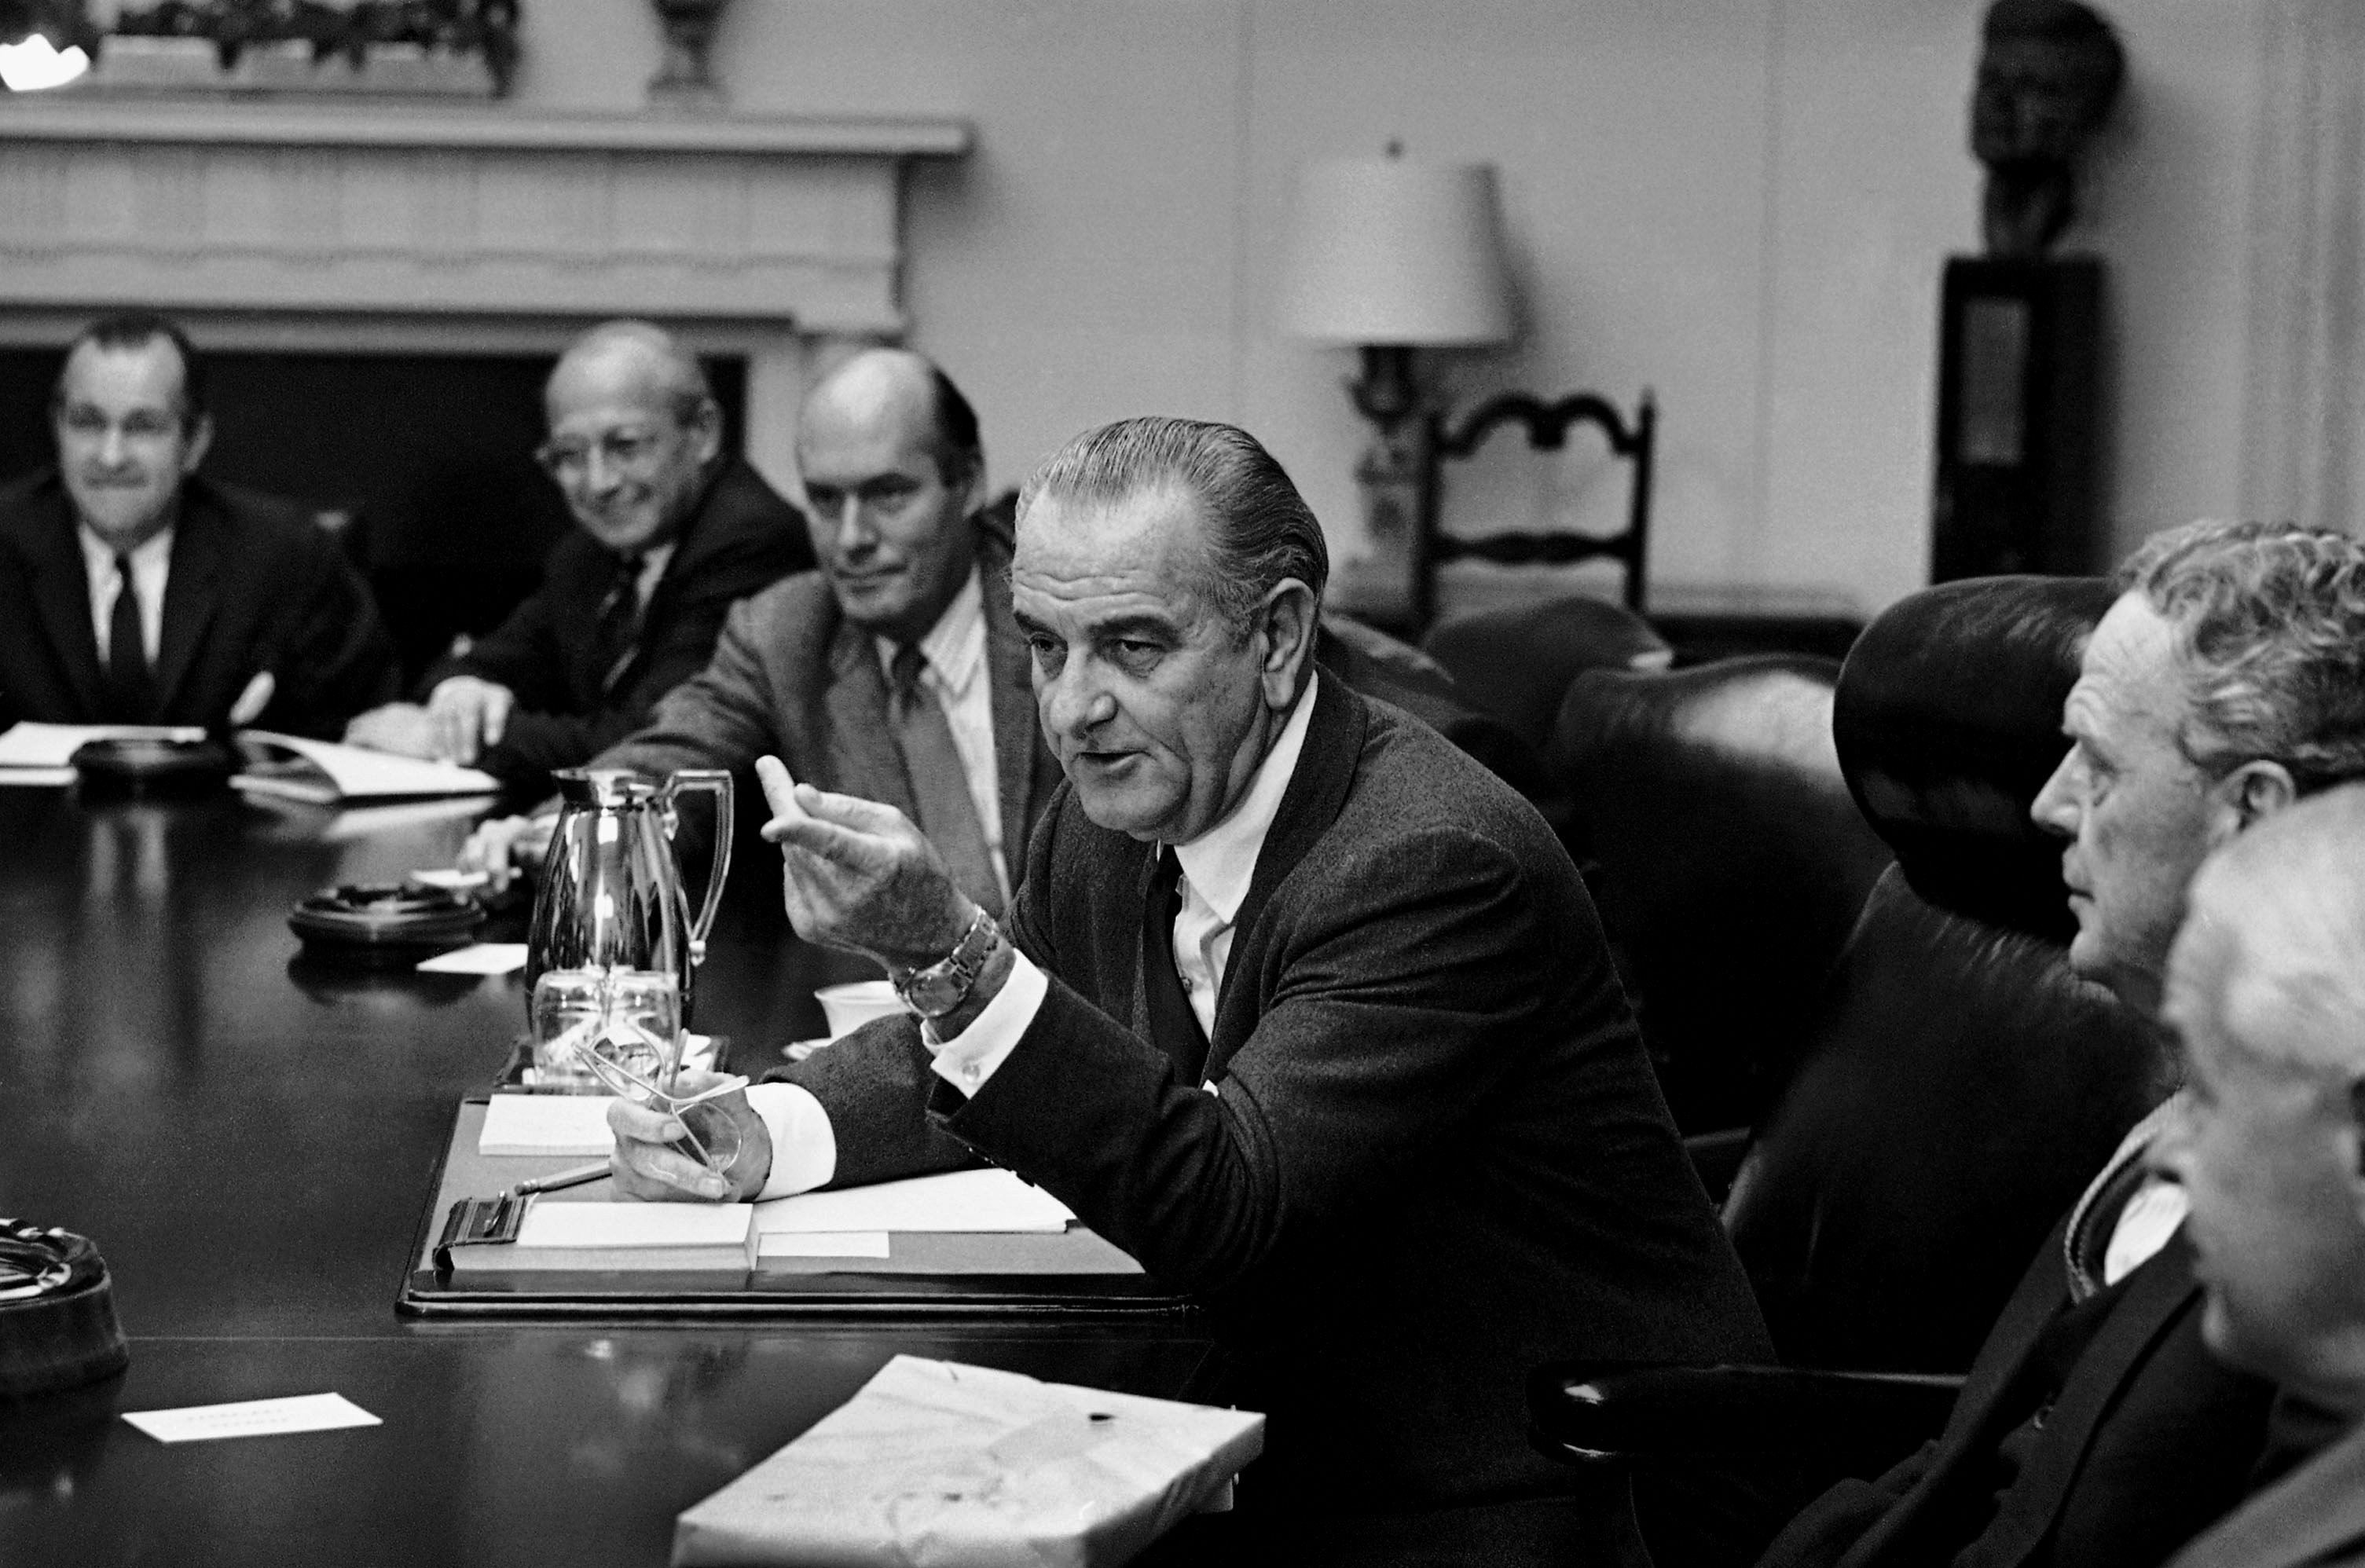 Synthesis Essays A Civil Action Essay Lyndon Johnson Was A Civil Rights Hero But Also A  Racist Essay Thesis also Topics For An Essay Paper Lyndon Johnson Was A Racist He Was Also The Greatest Champion Of  Argumentative Essay Proposal